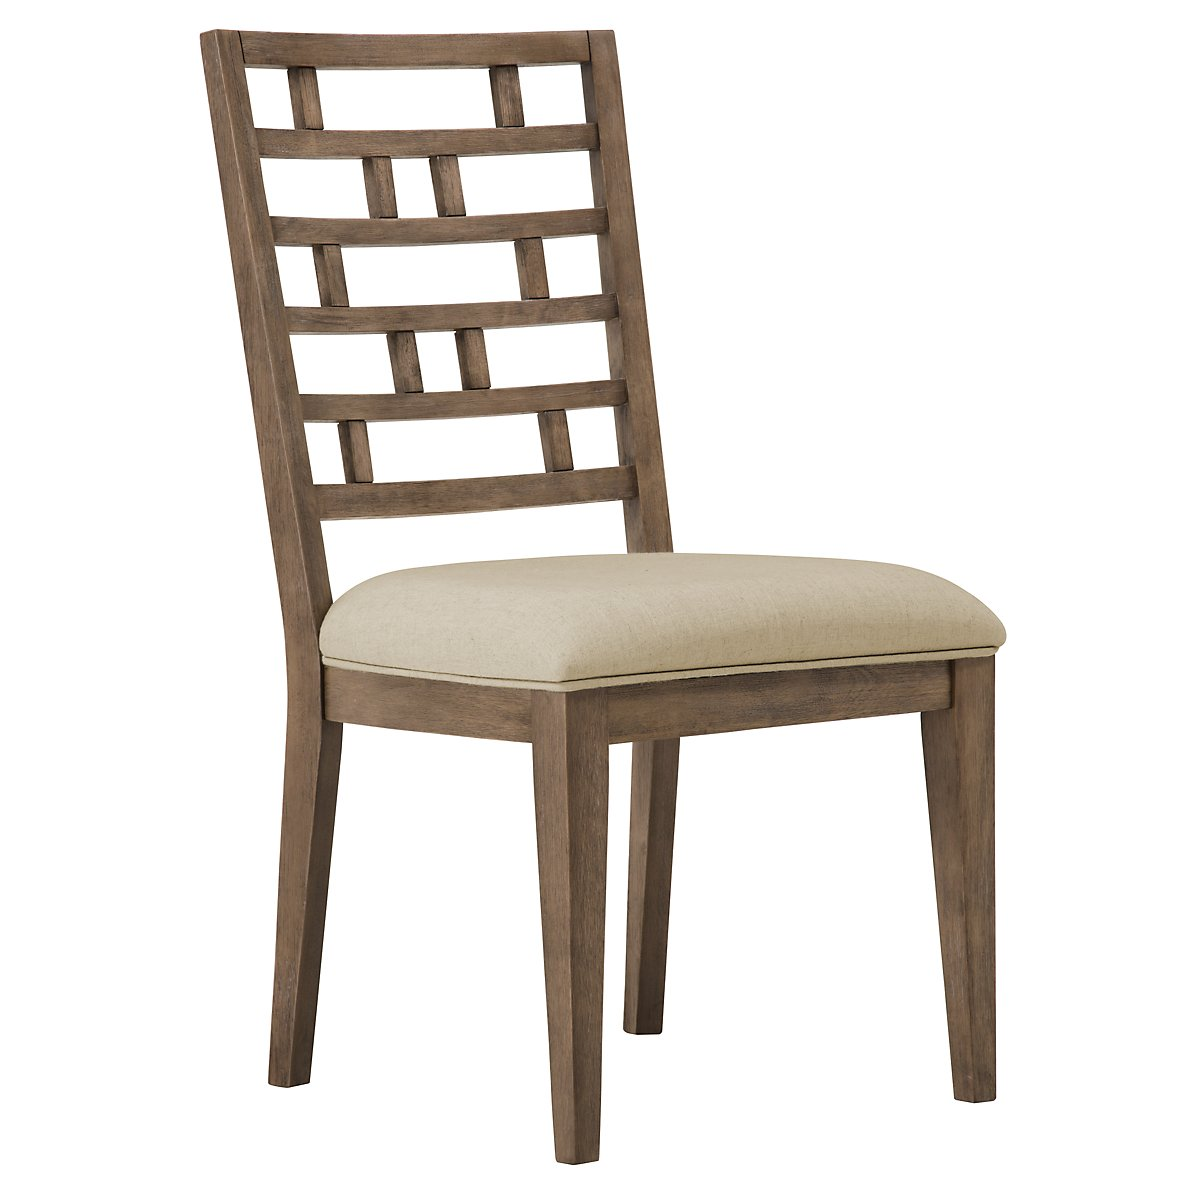 Mirabelle Light Tone Wood Wood Side Chair